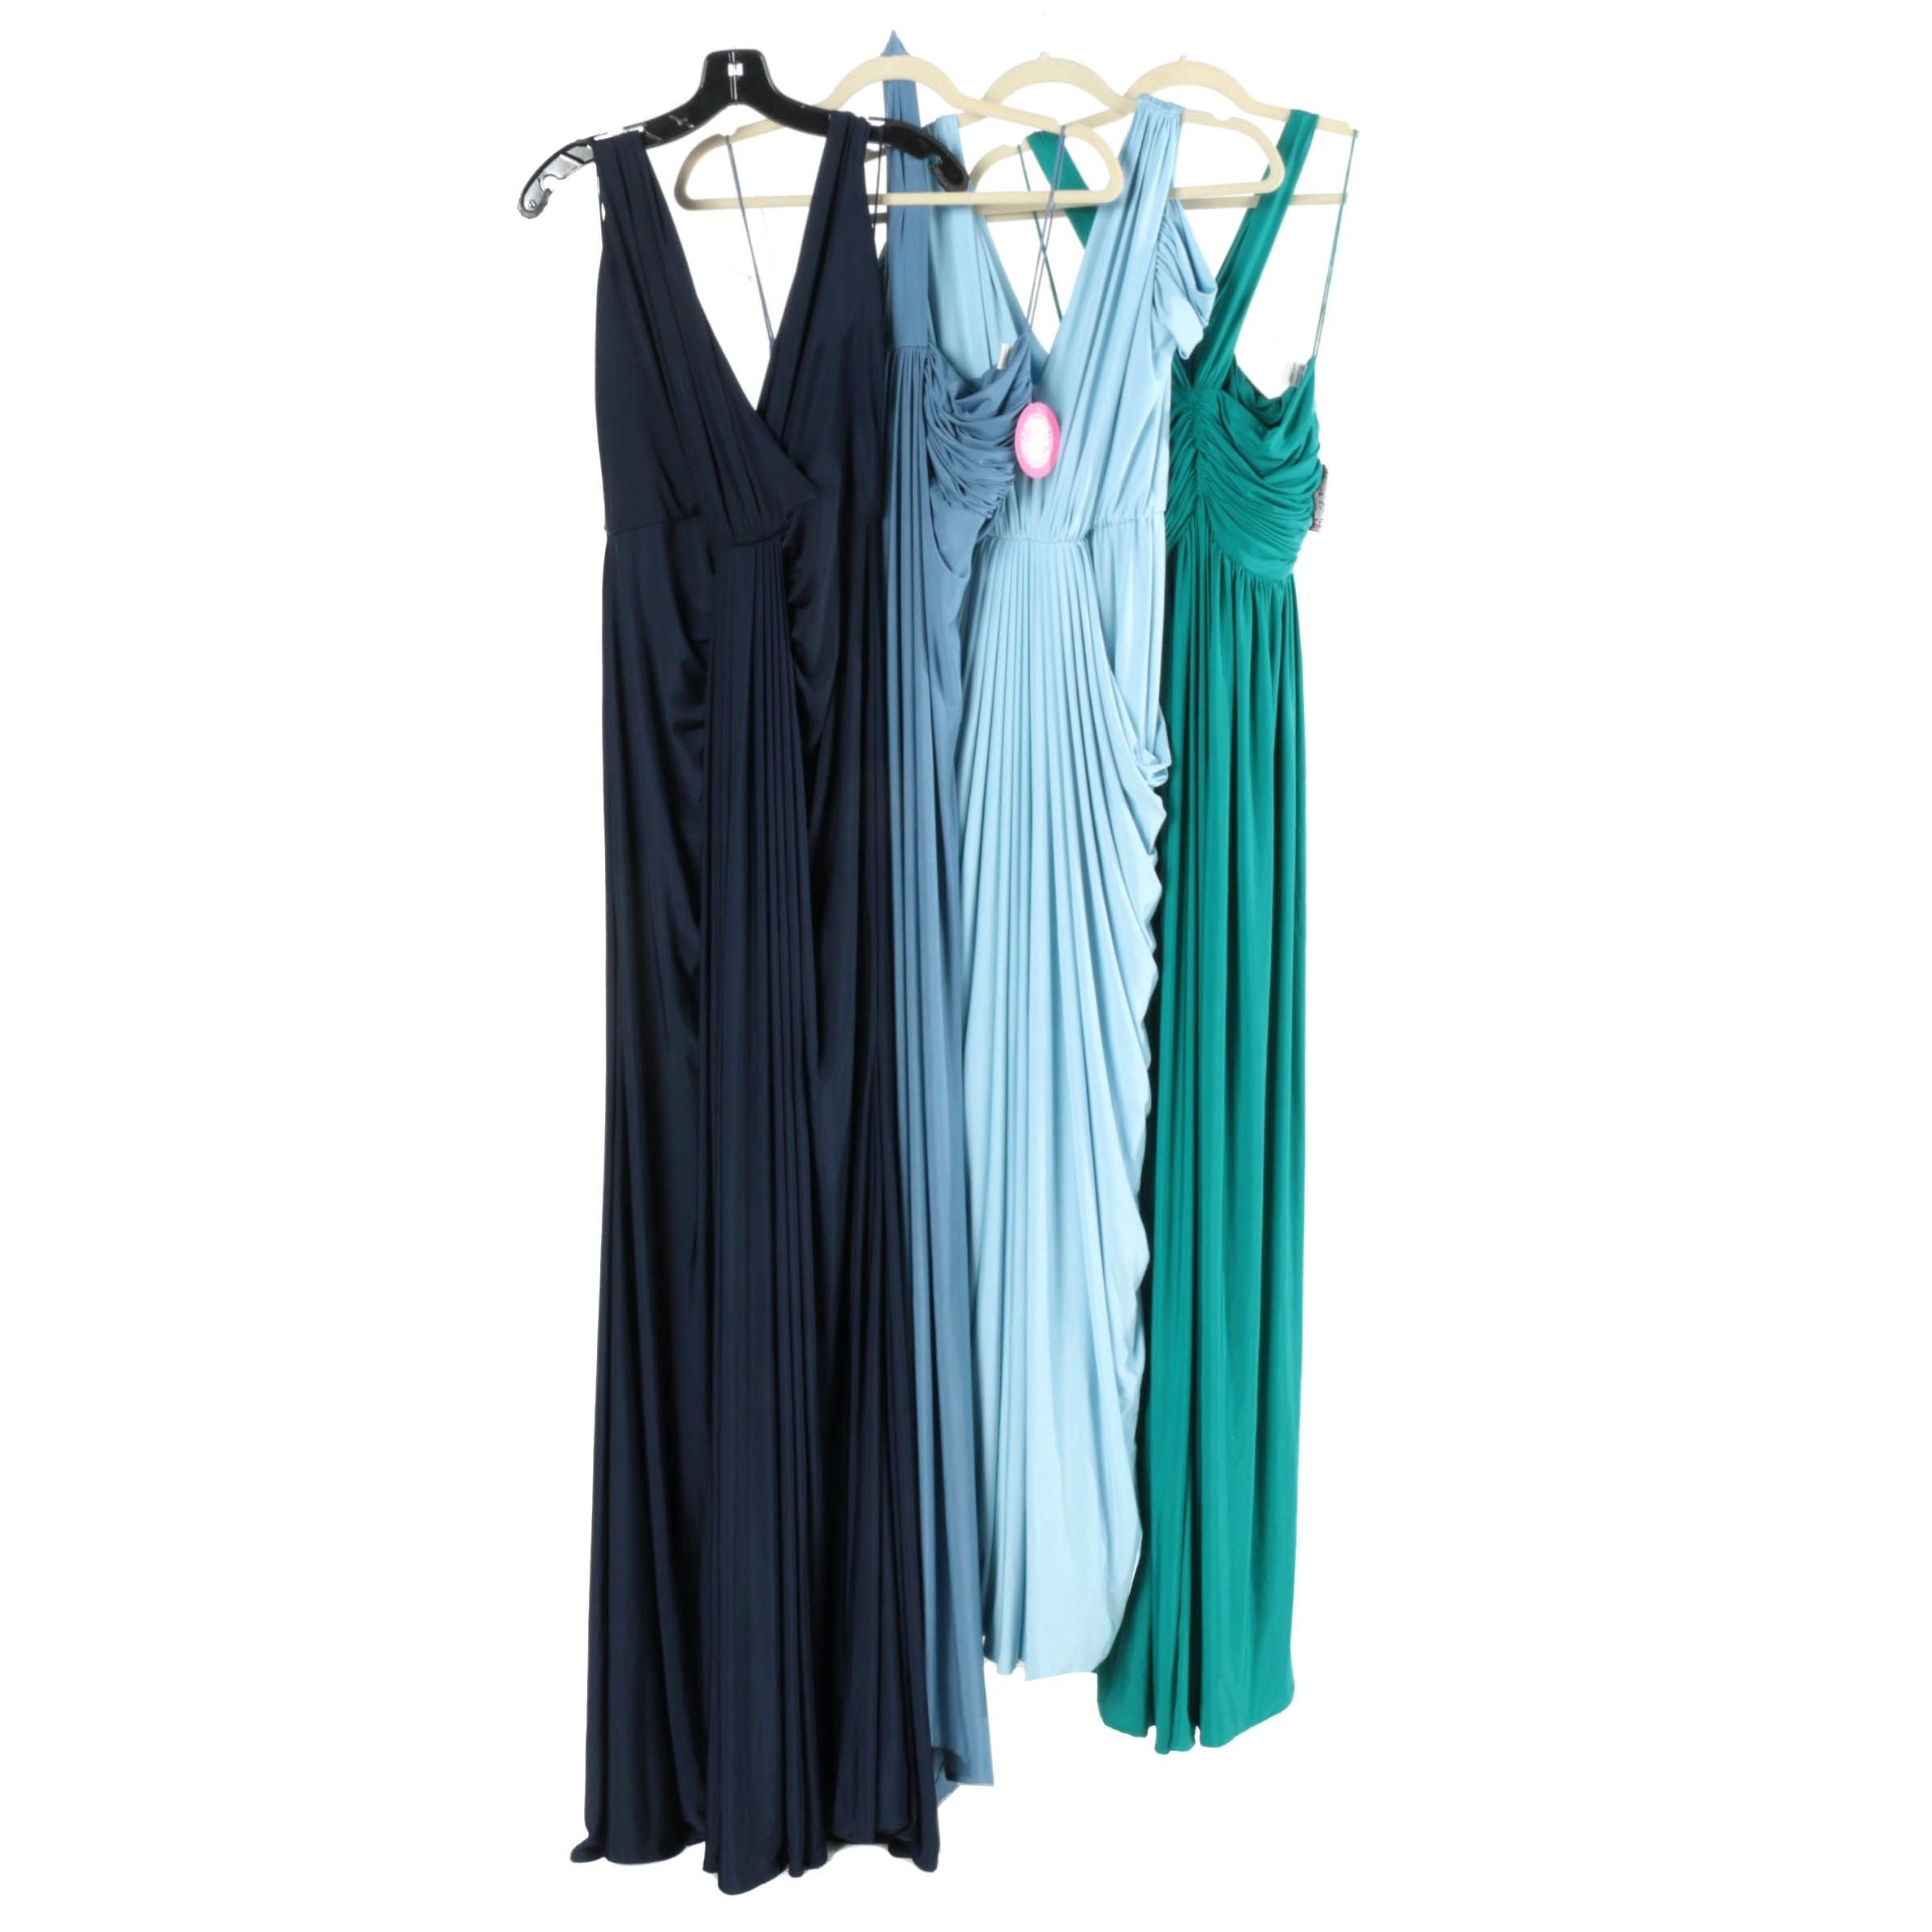 Pia Gladys Perey Bridesmaid Dresses